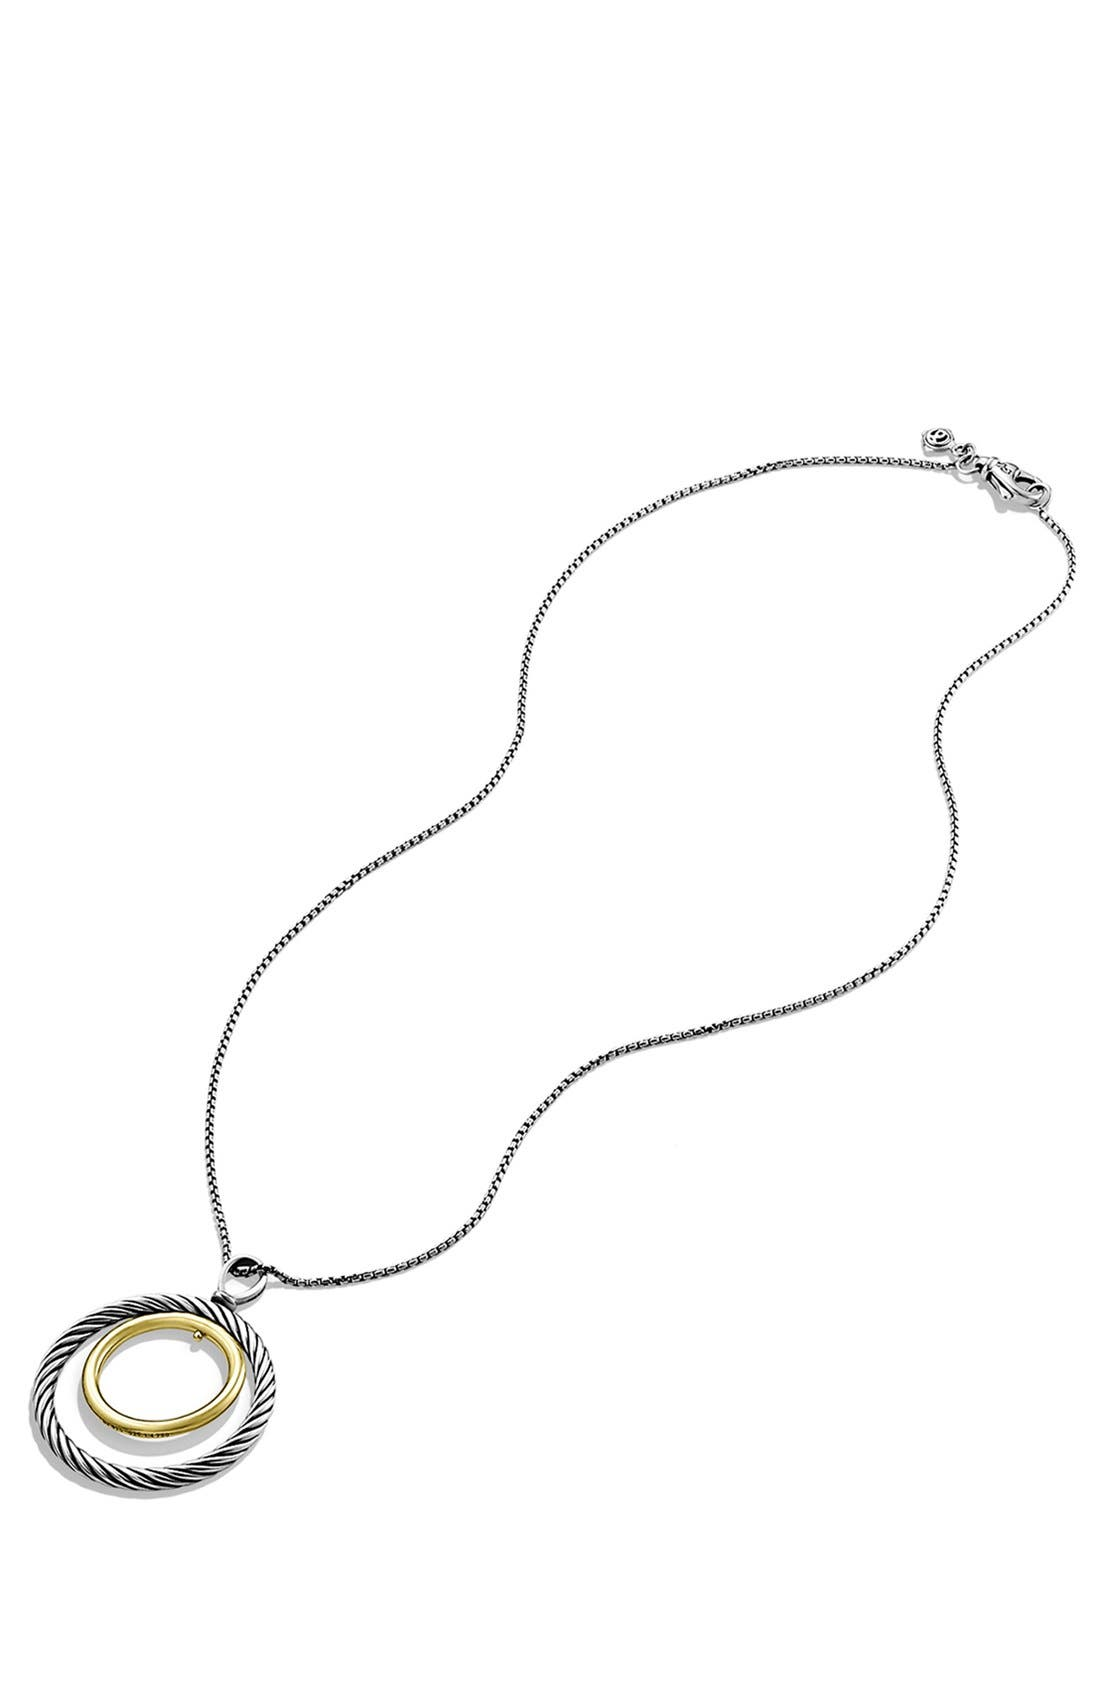 'Mobile' Pendant with Gold on Chain,                             Alternate thumbnail 2, color,                             040